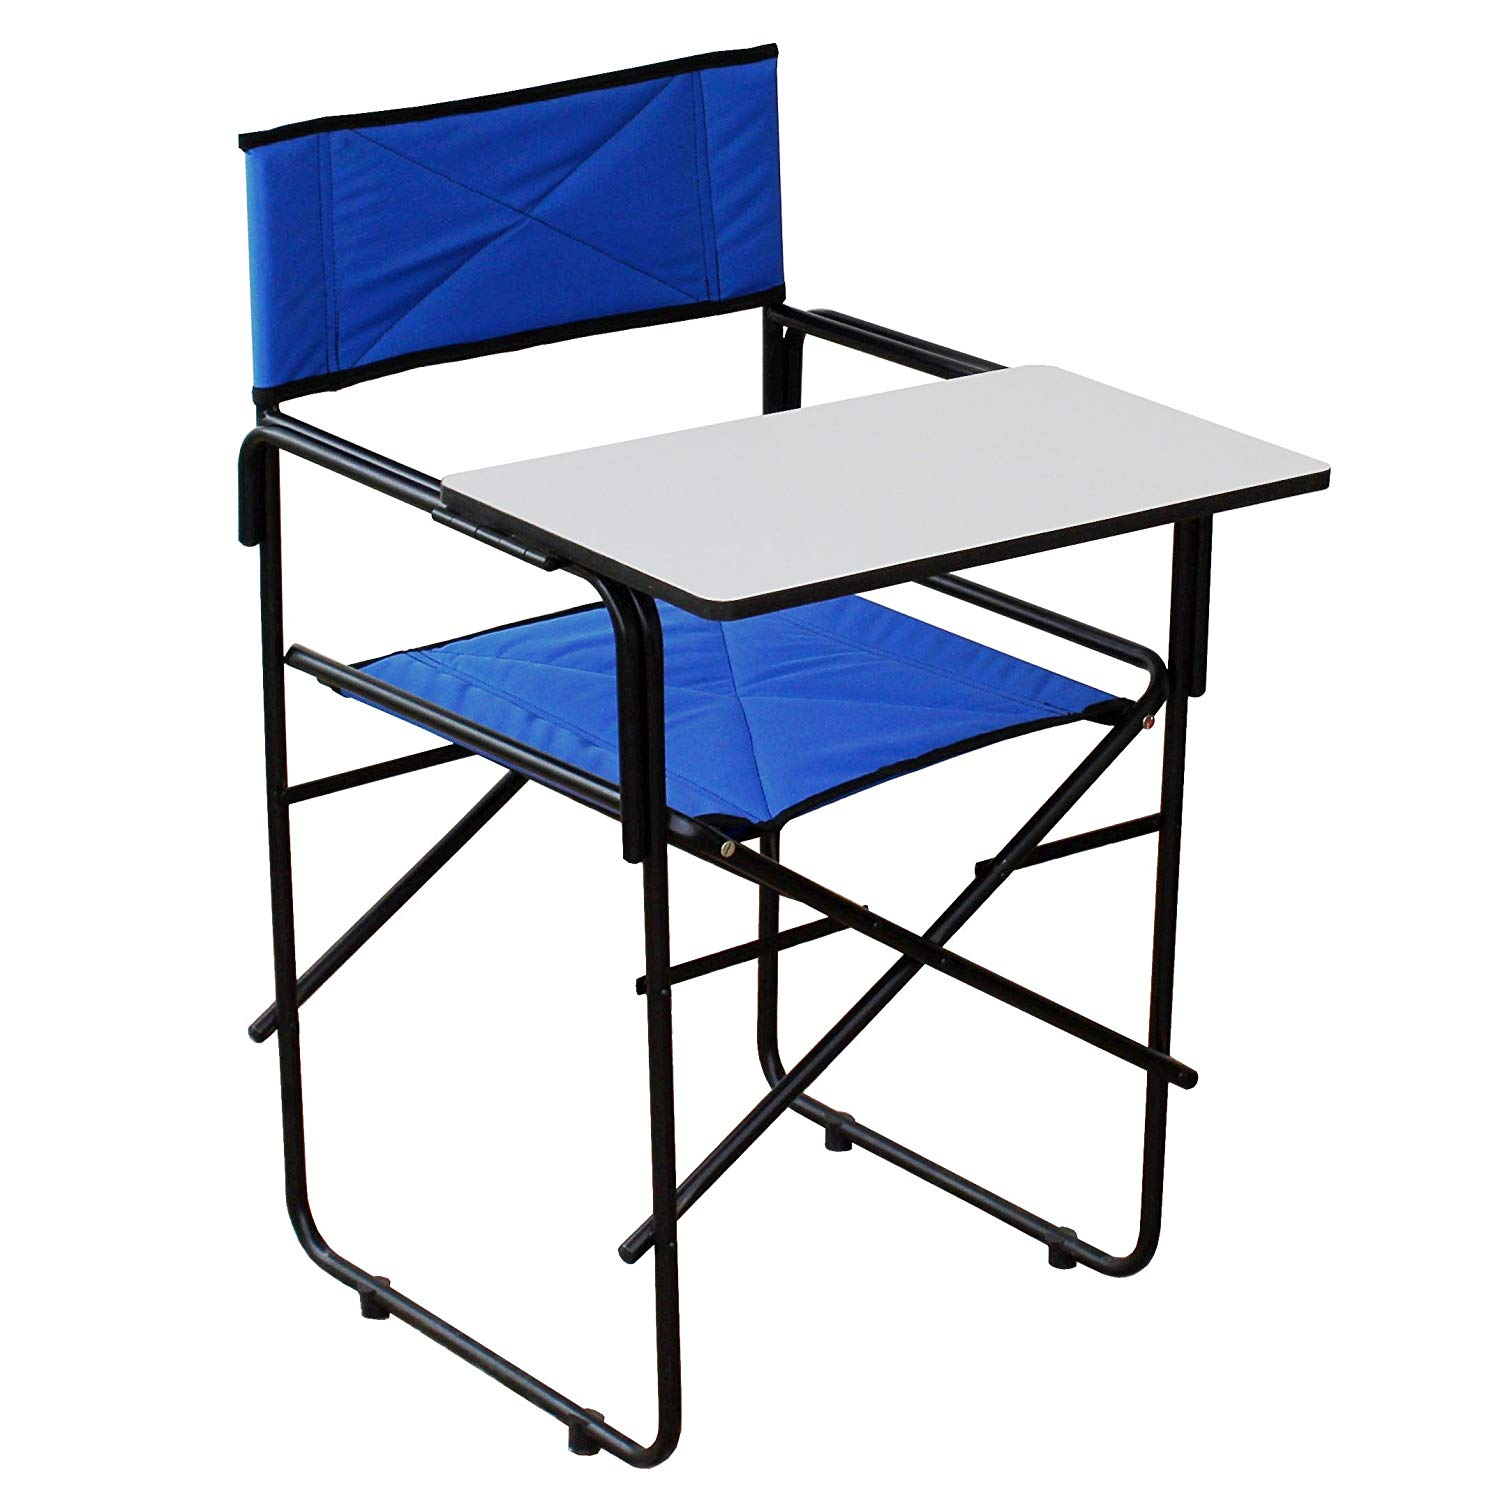 folding chair india rocking danish design spacecrafts study with writing pad tech